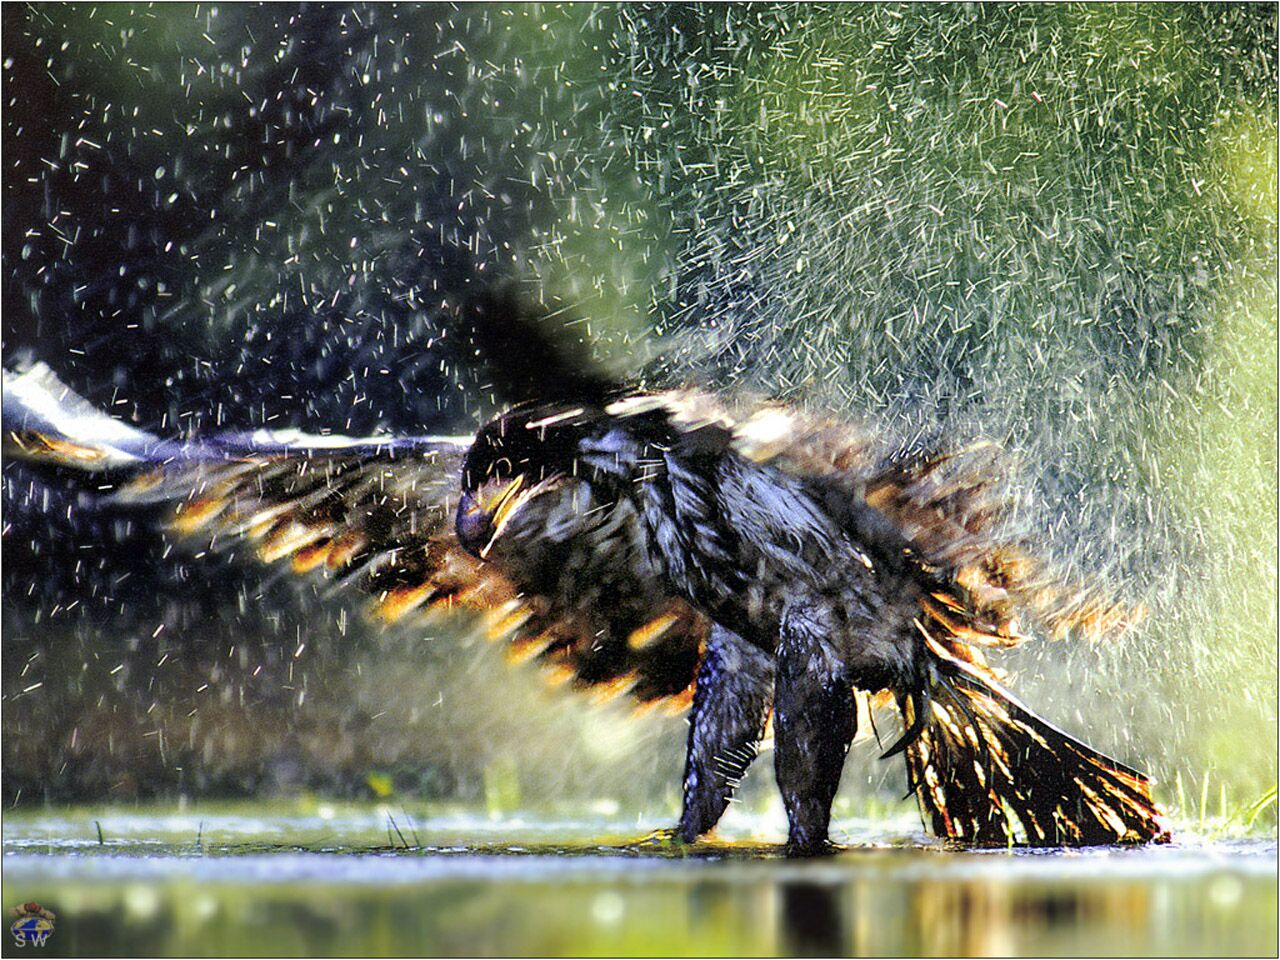 Immature Bald Eagle - animals wallpaper image with birds